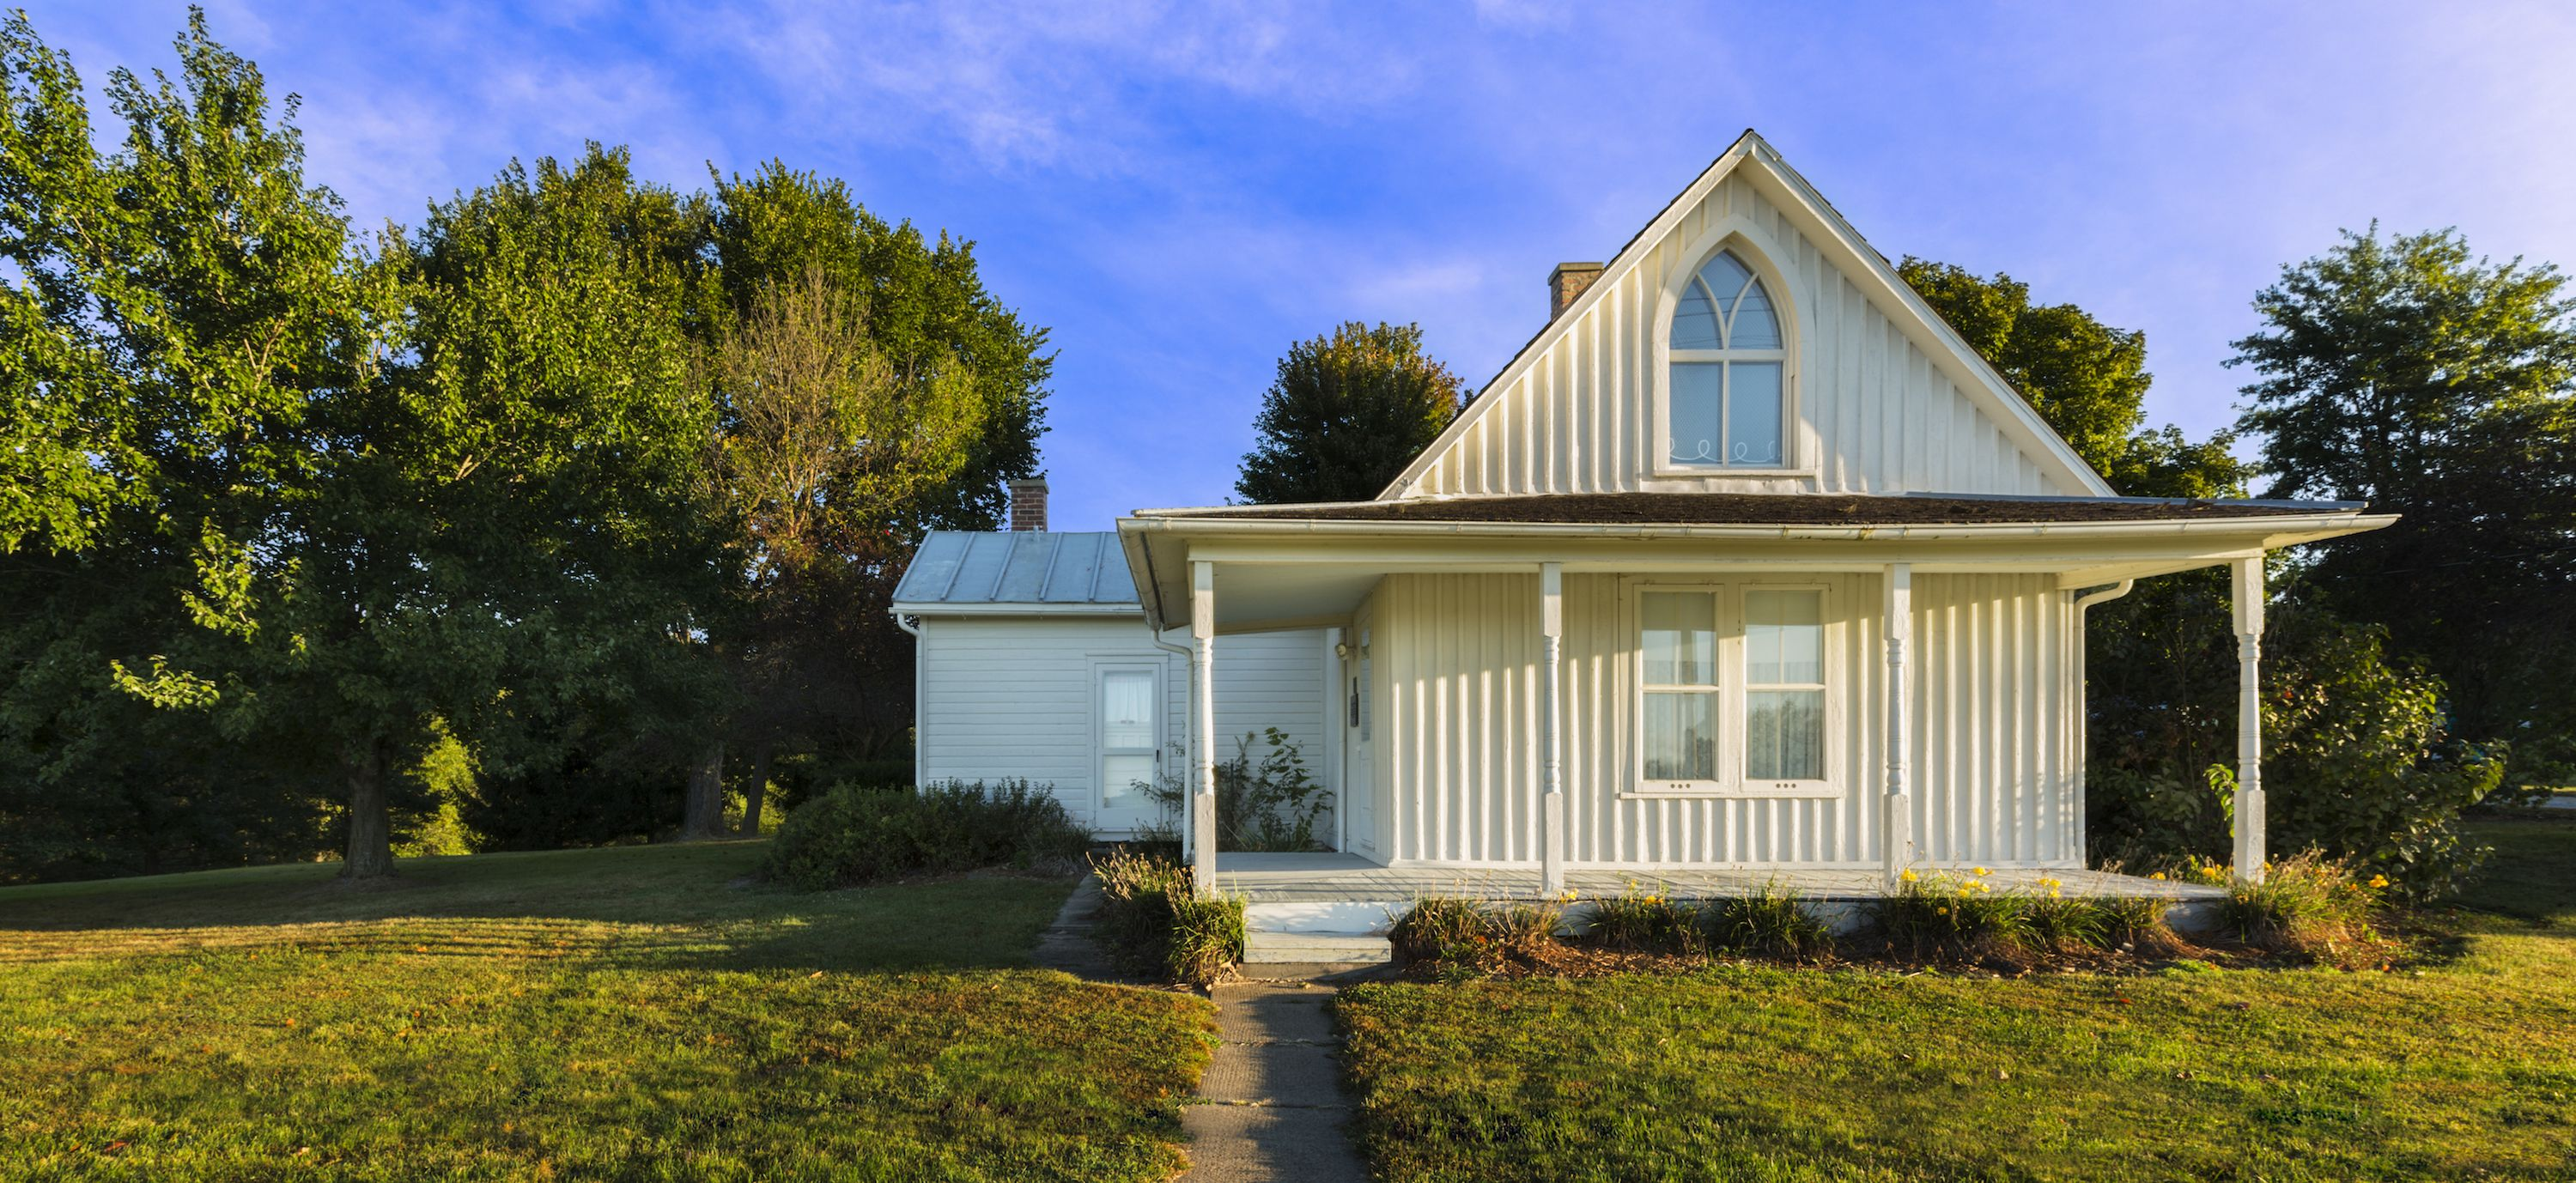 Gothic Revival Style House From American Gothic